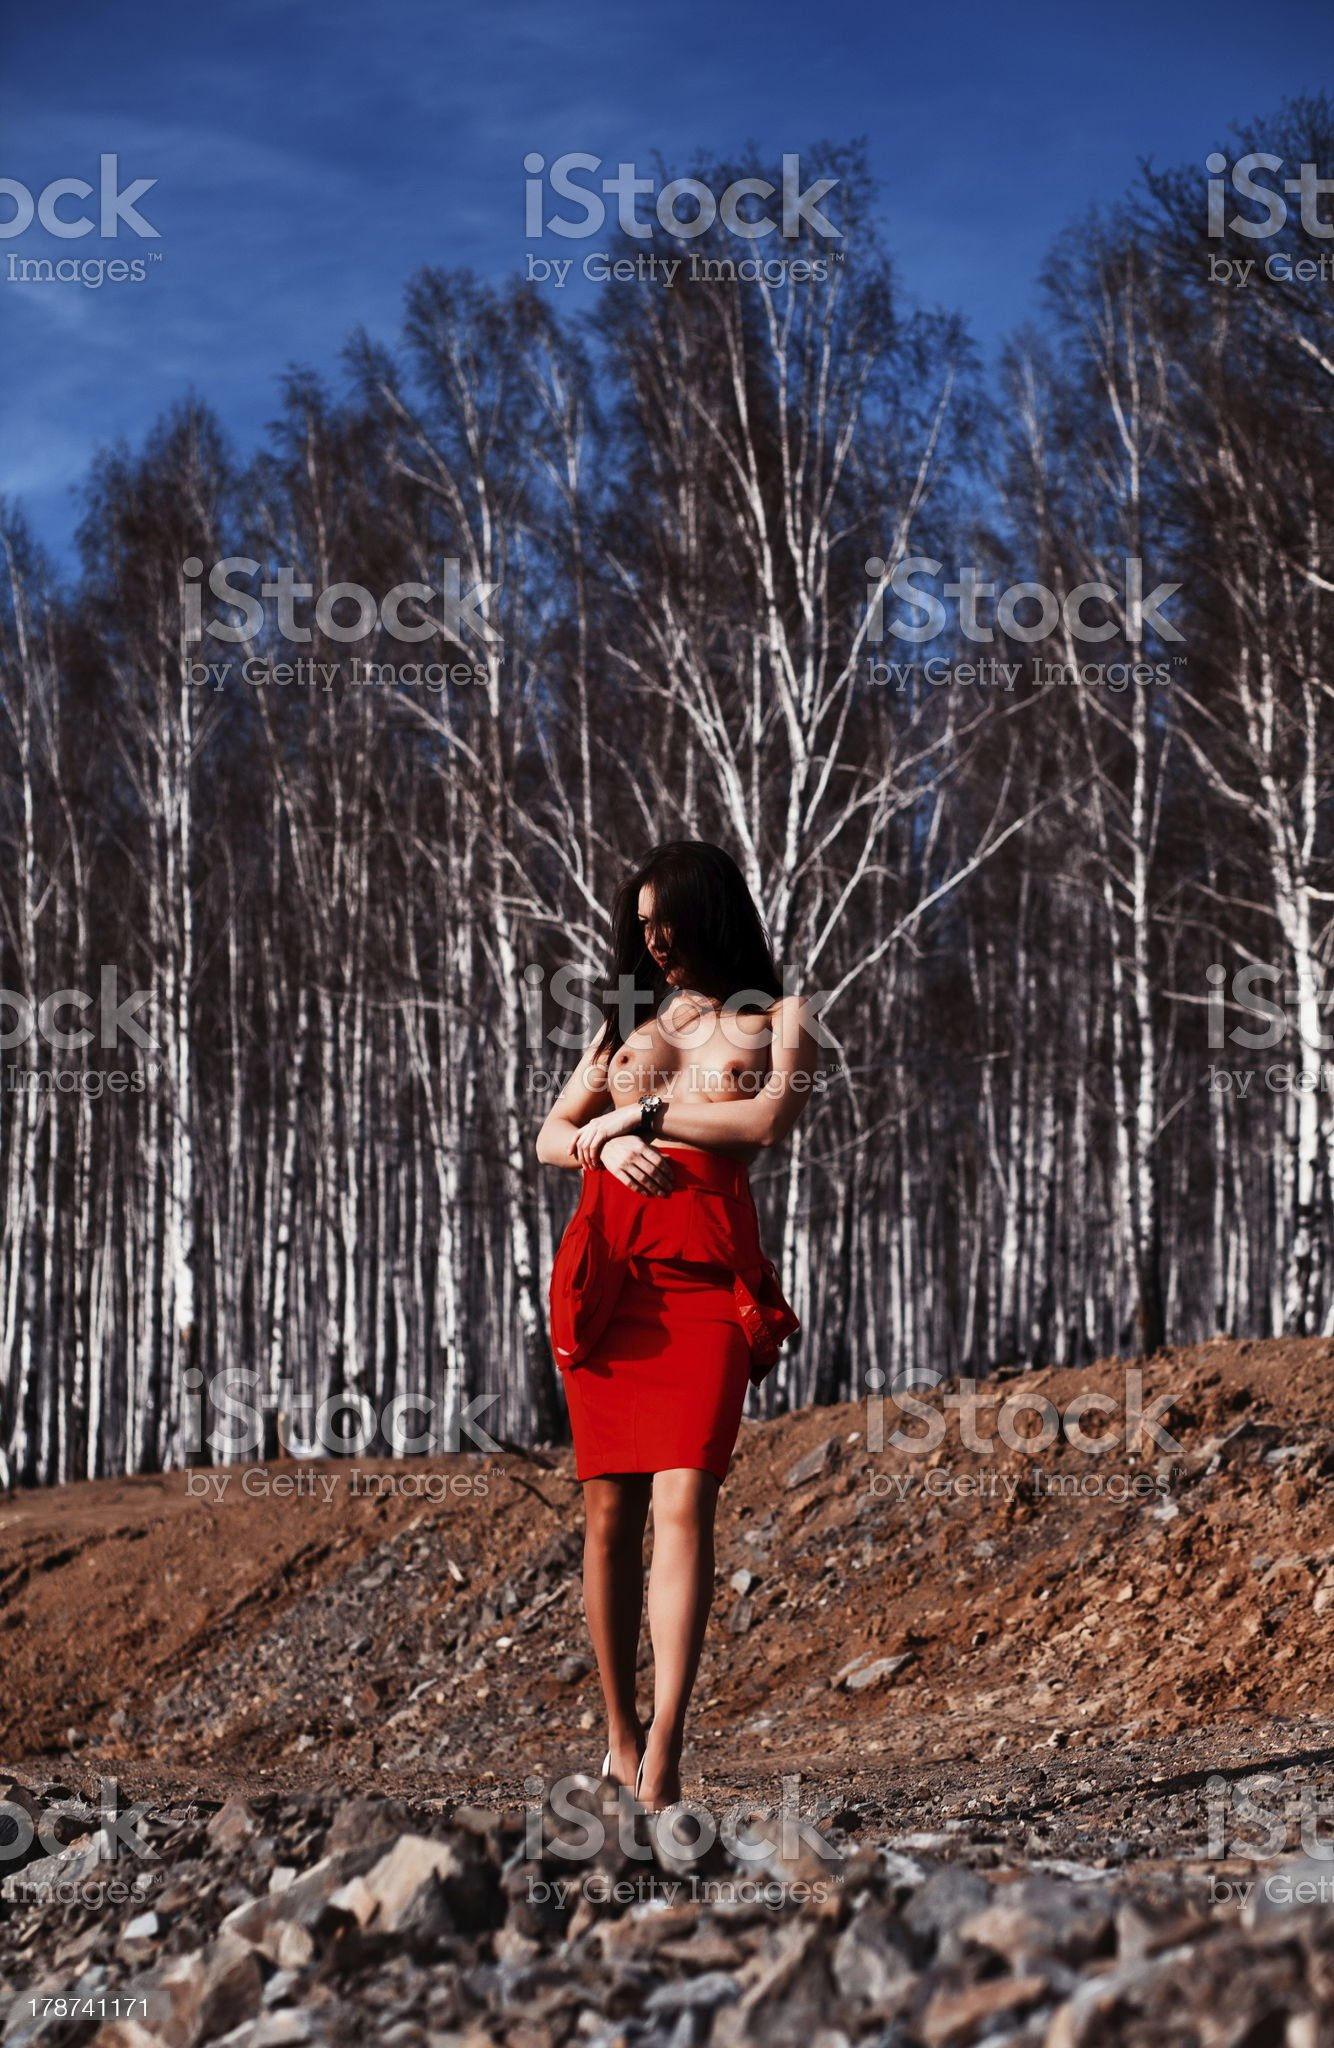 Topless woman in birch tree grove royalty-free stock photo